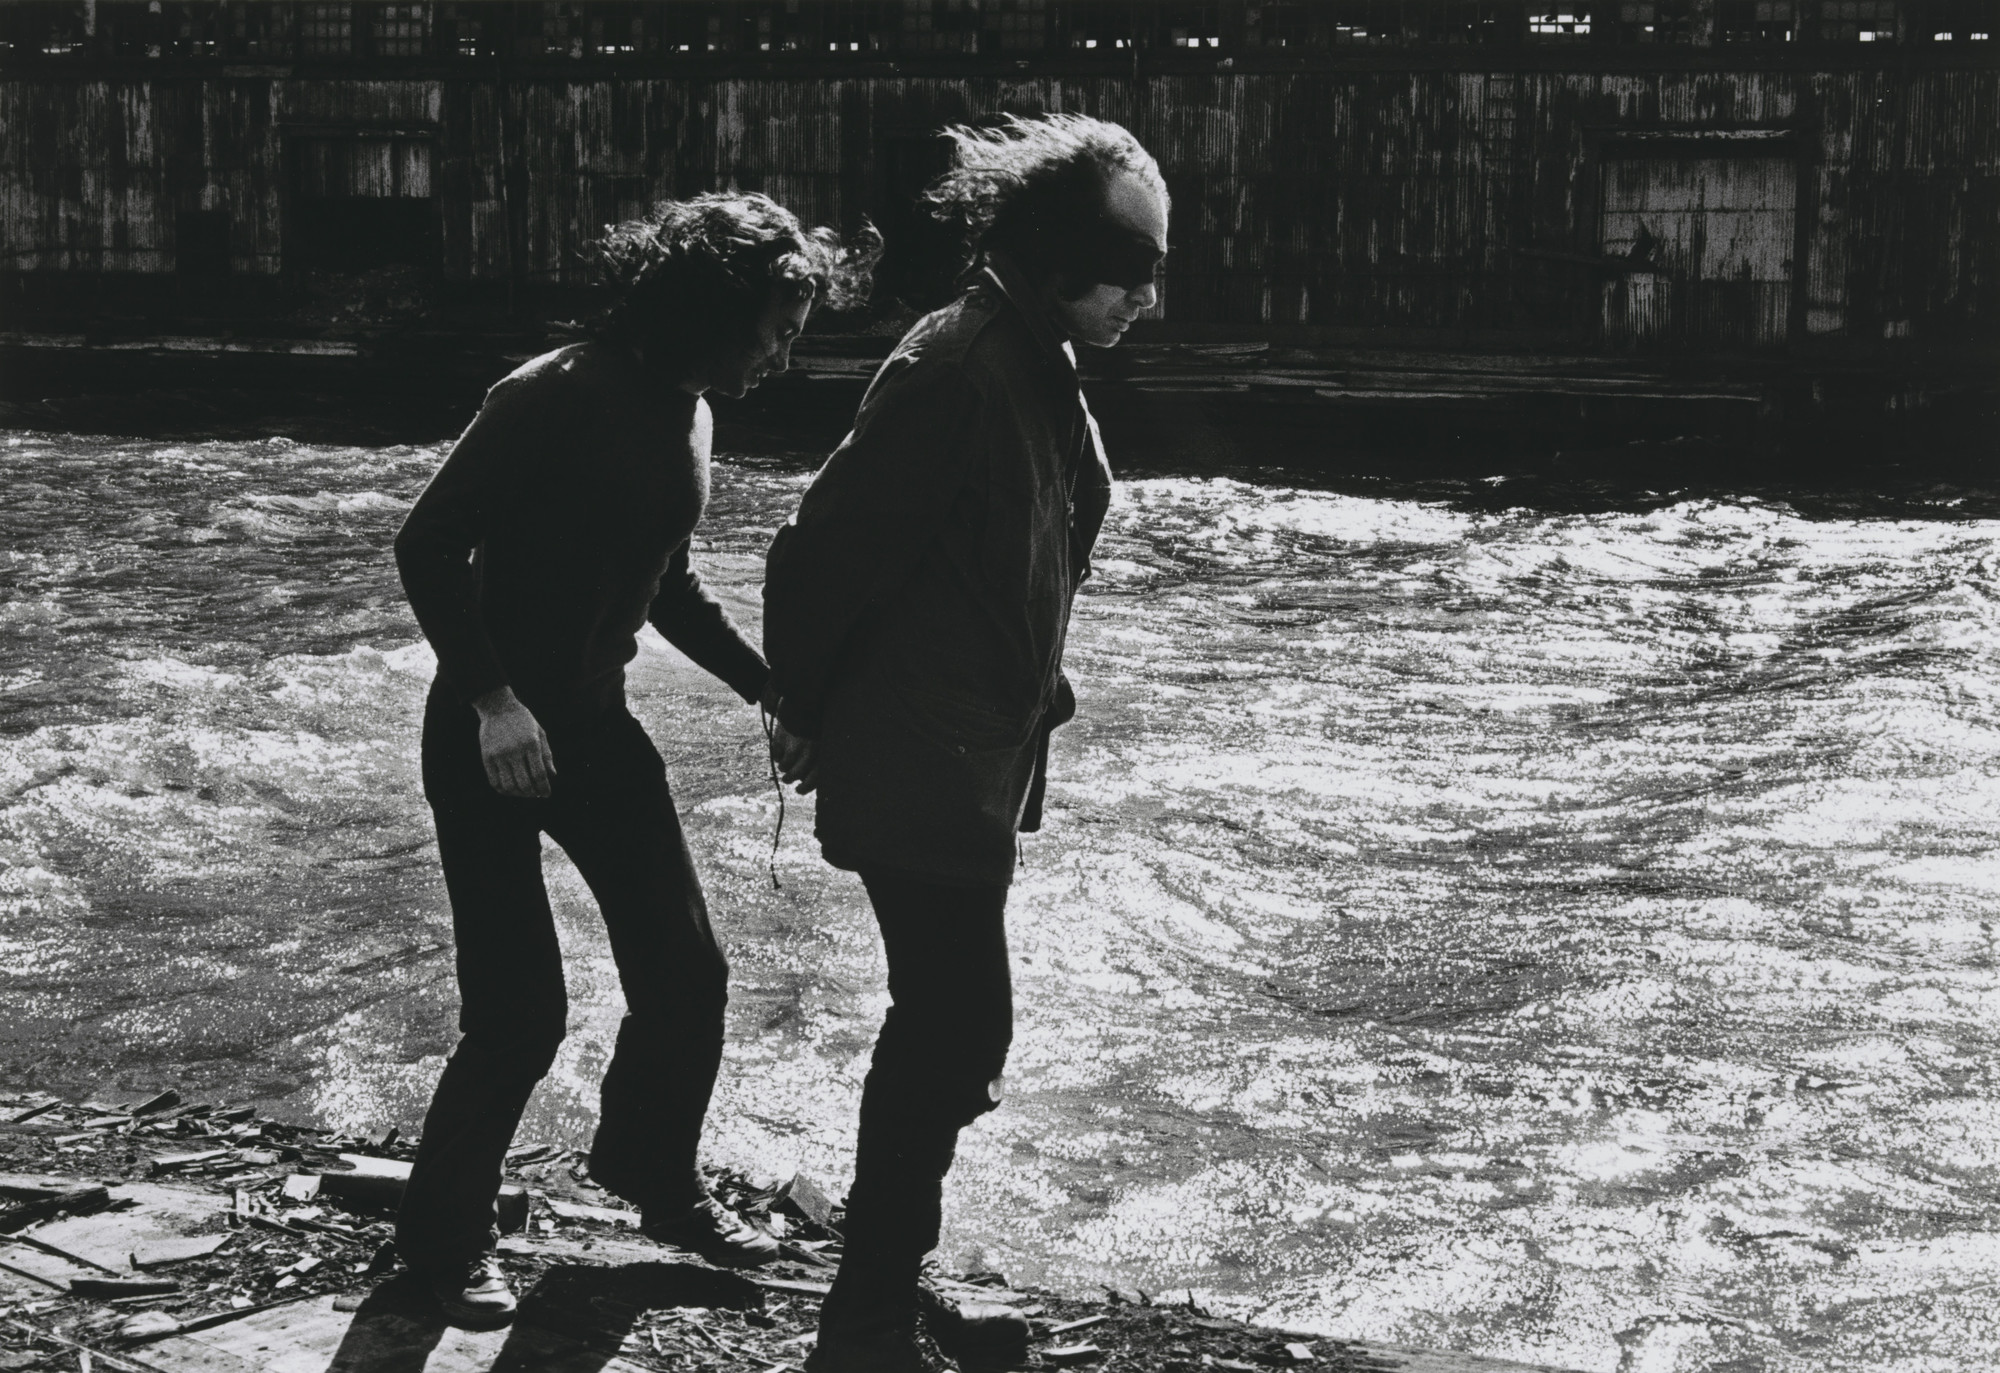 Vito Acconci, Harry Shunk, János Kender. Security Zone. 1971